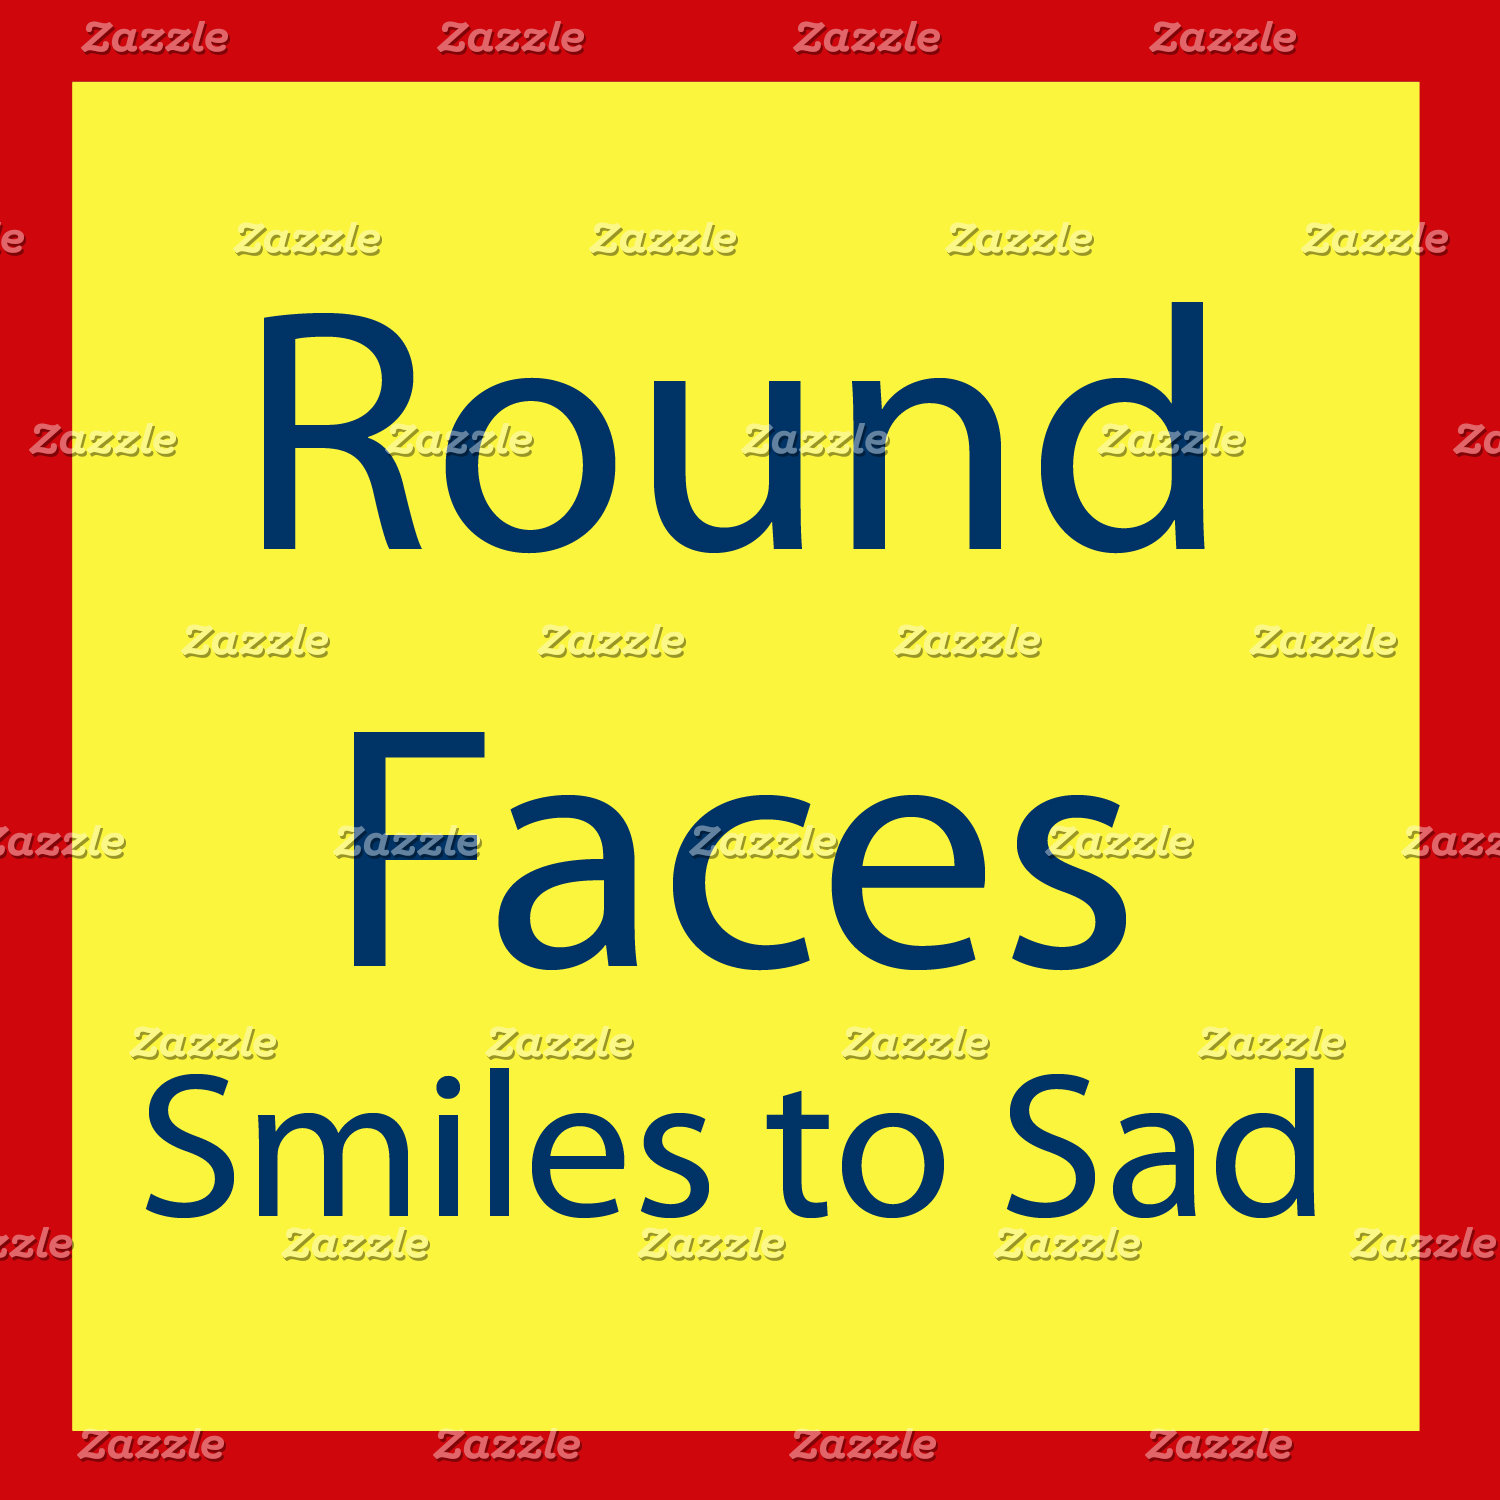 Round Faces (smiles to sad)